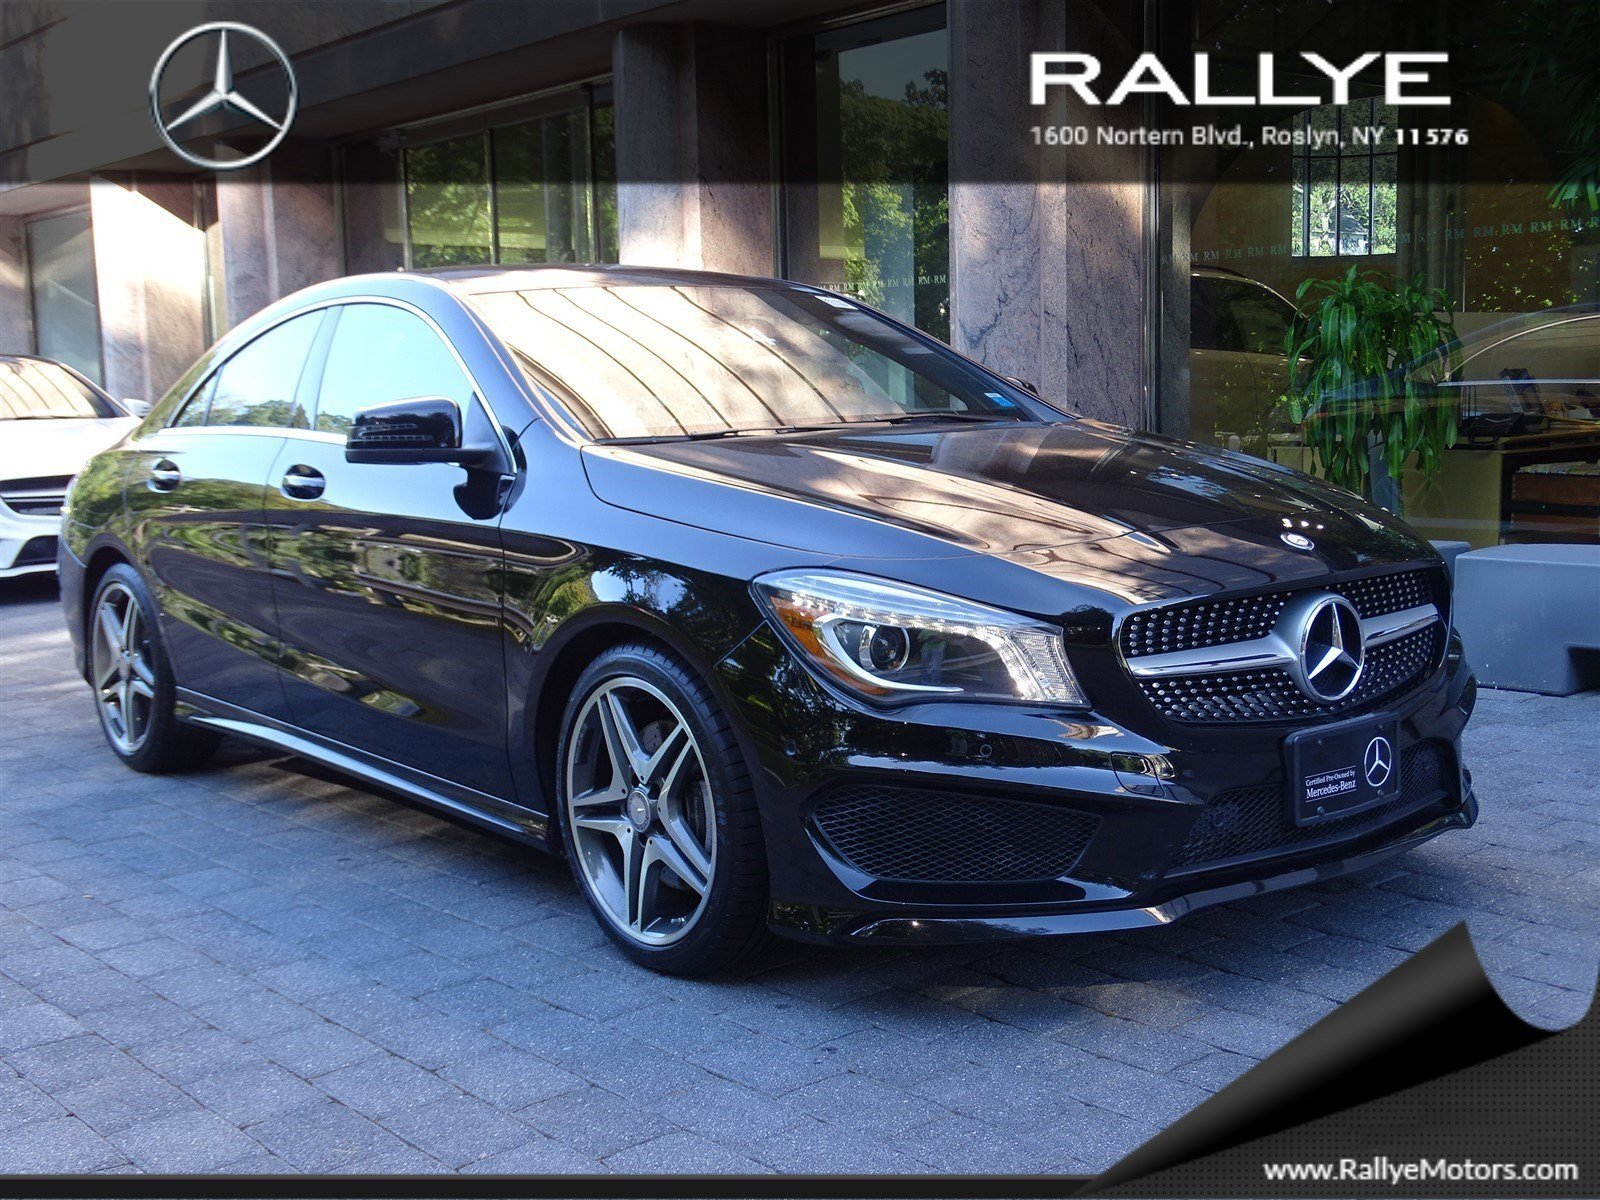 2014 mercedes benz cla250 review price 2017 2018 best for Mercedes benz highest price